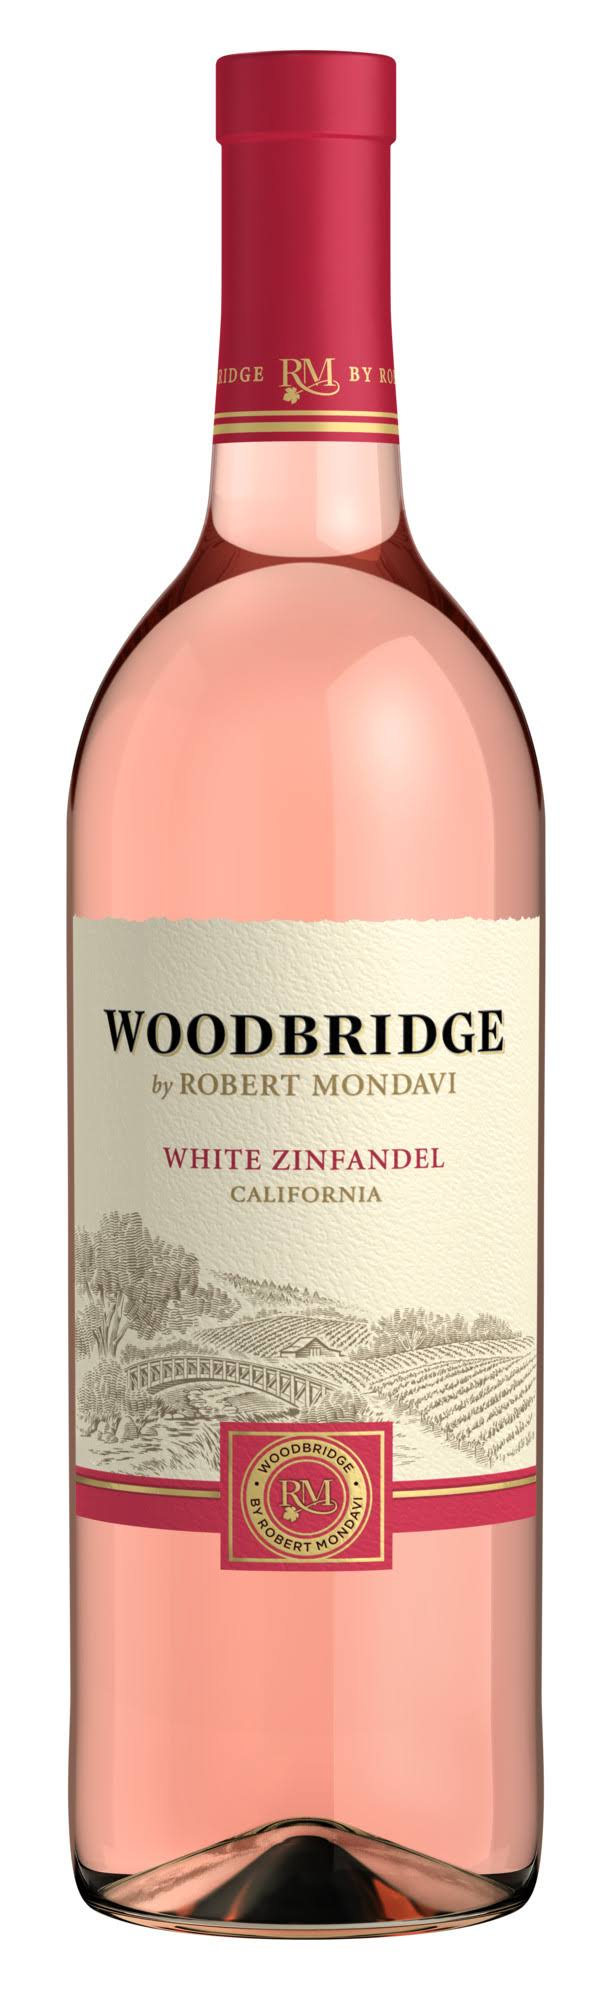 Woodbridge by Robert Mondavi White Zinfandel Wine